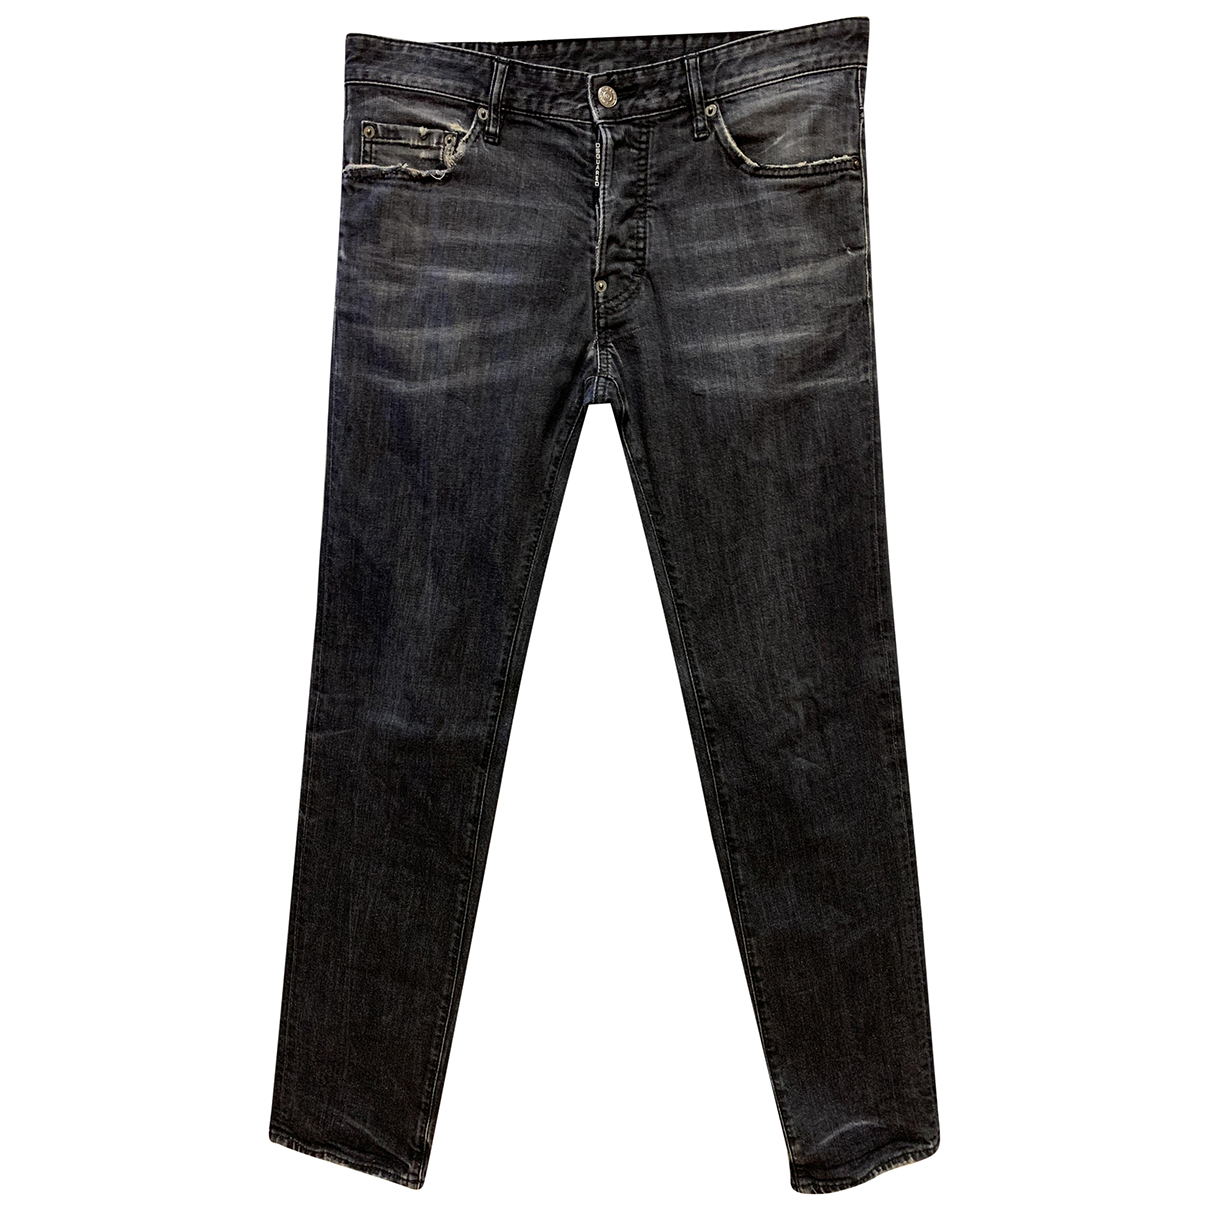 Dsquared2 \N Black Cotton - elasthane Jeans for Men 44 FR